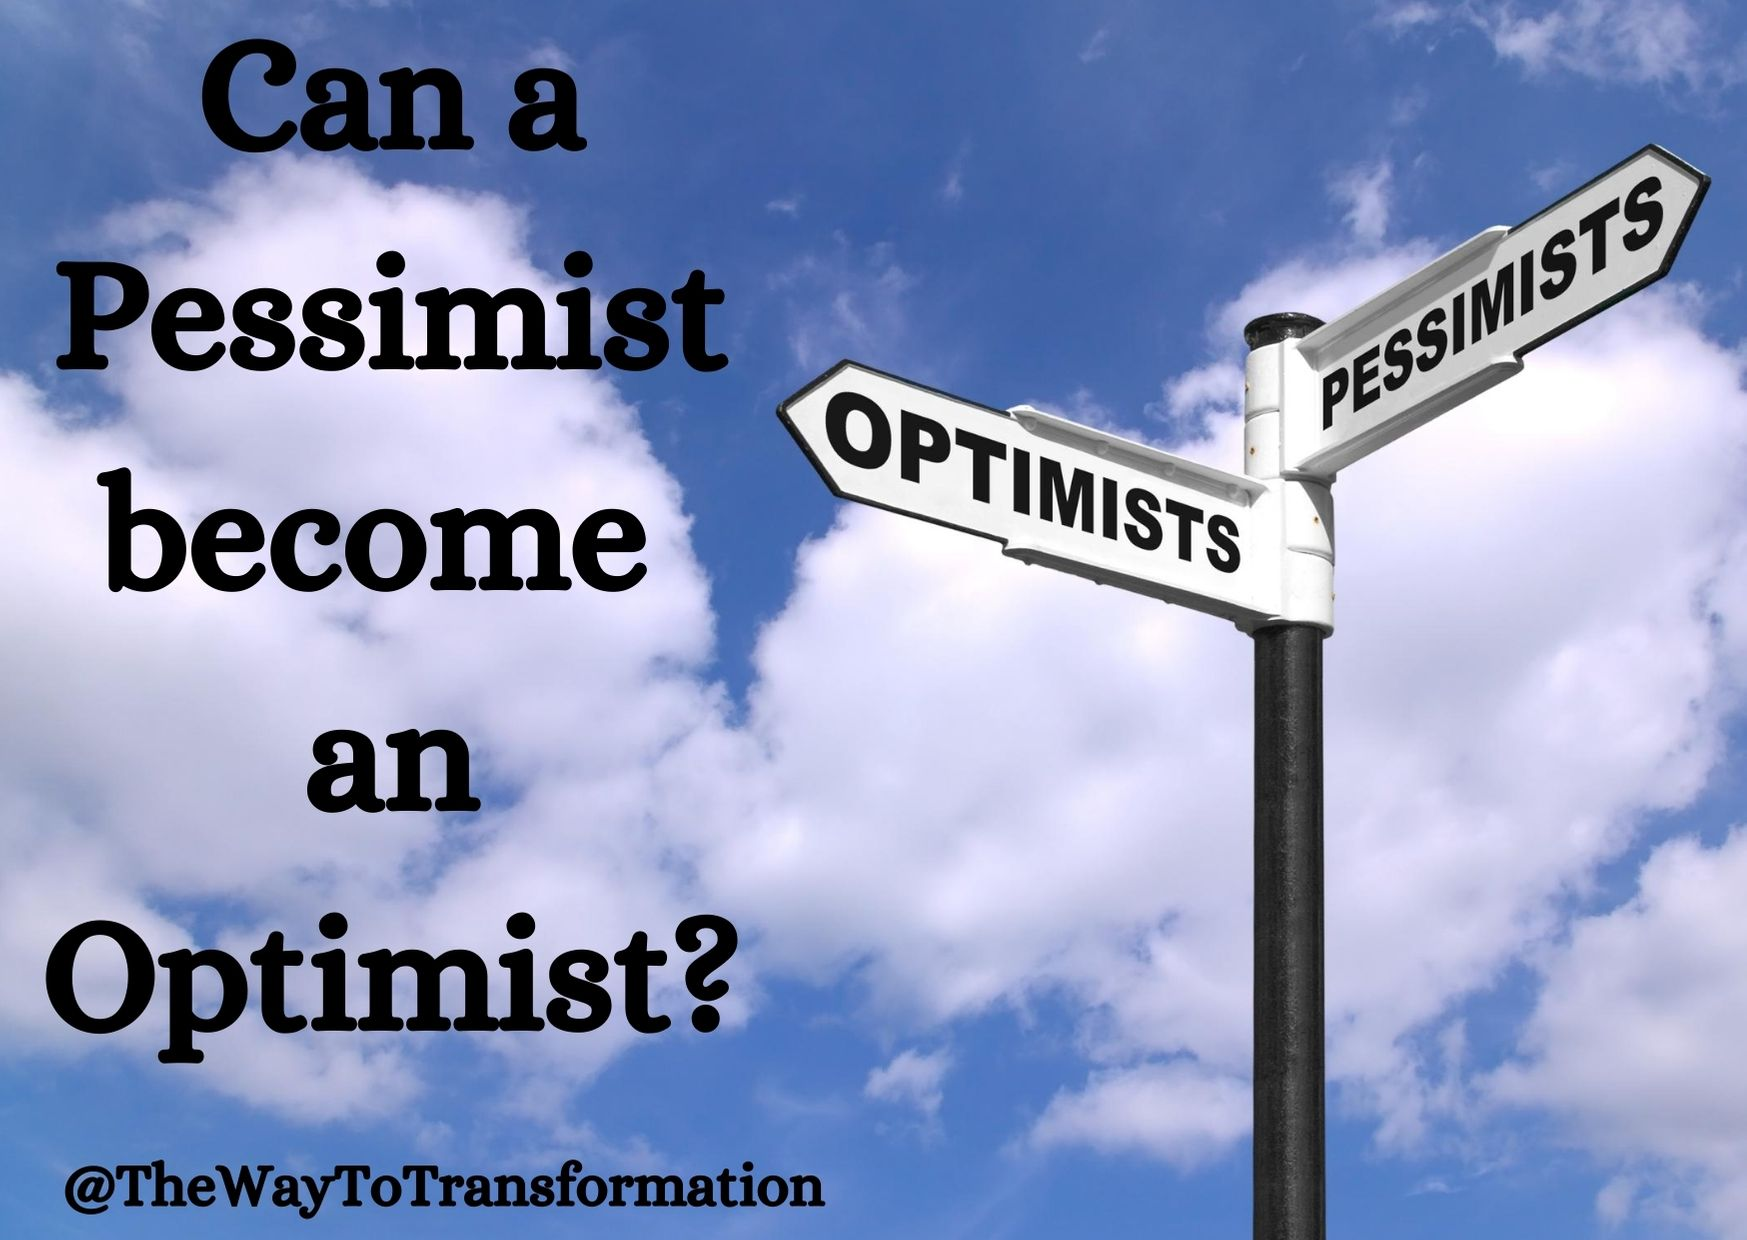 Can a Pessimist become an Optimist